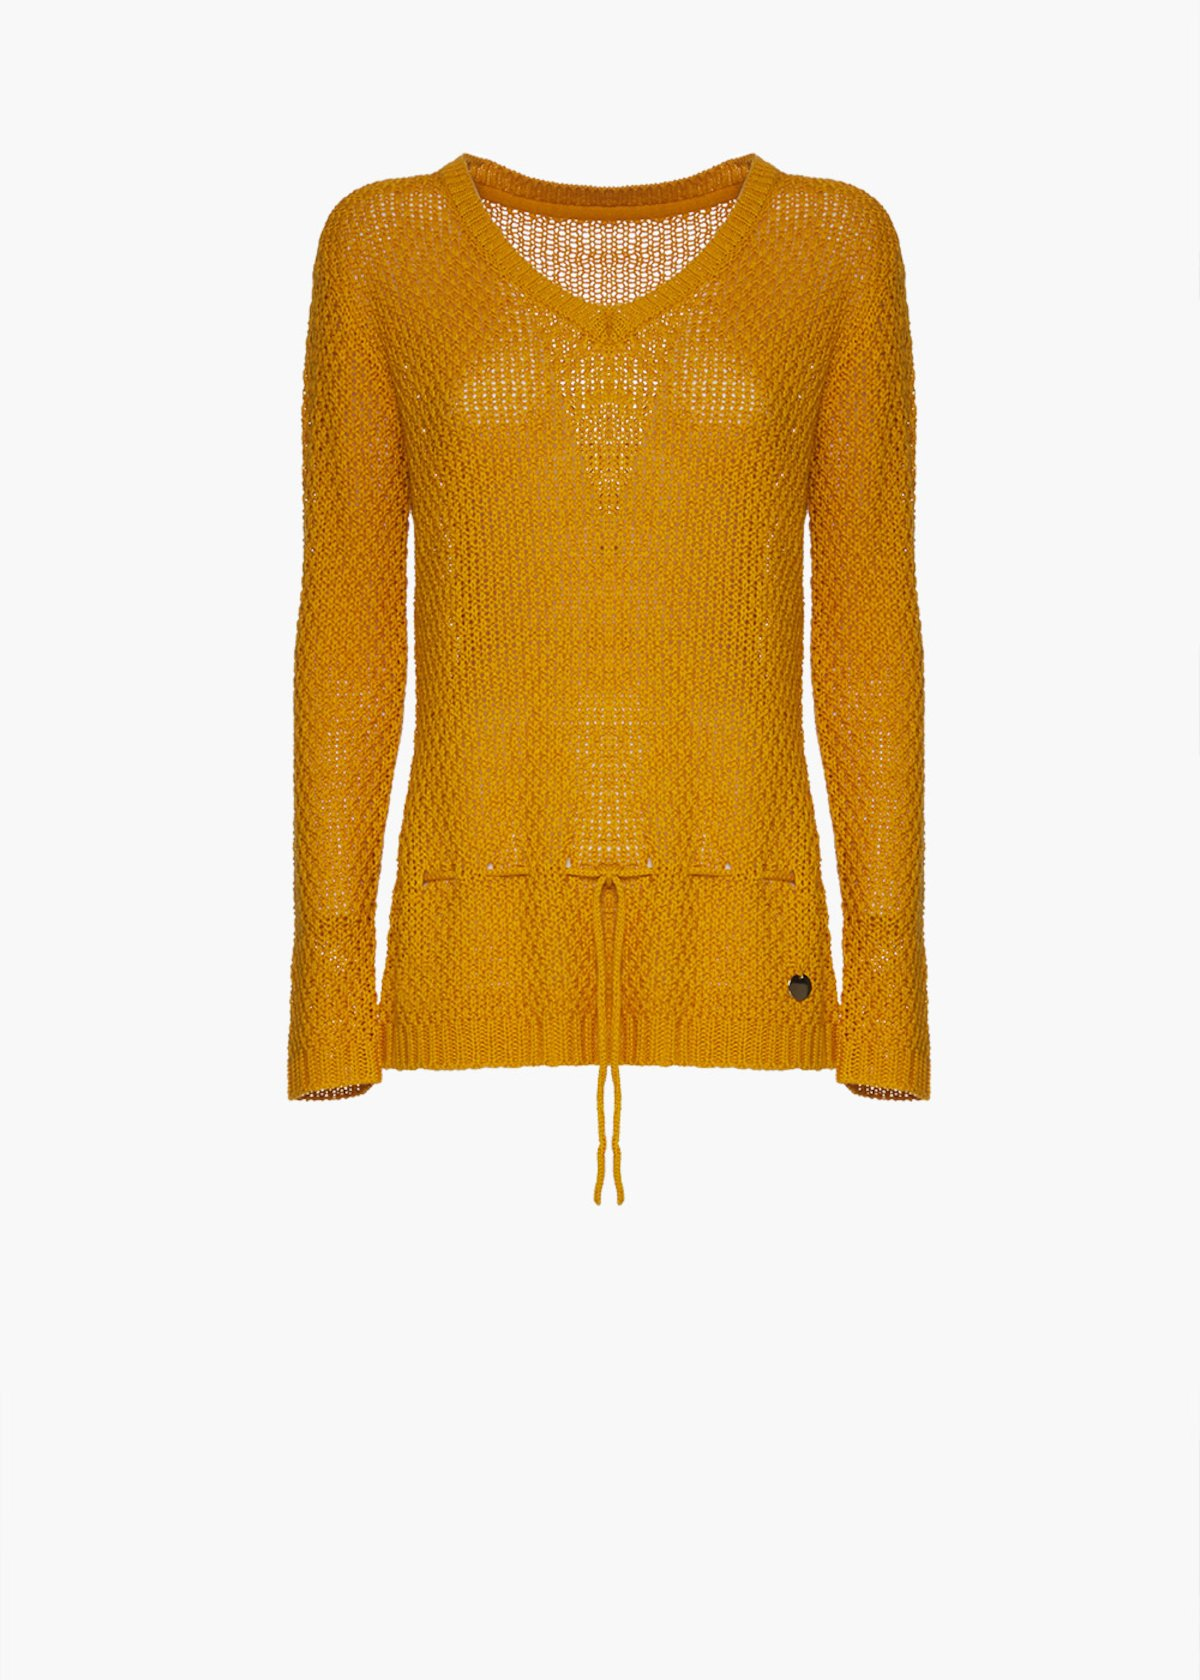 V-neckline and drawnstrings at the bottom sweater Magdy - Brown - Woman